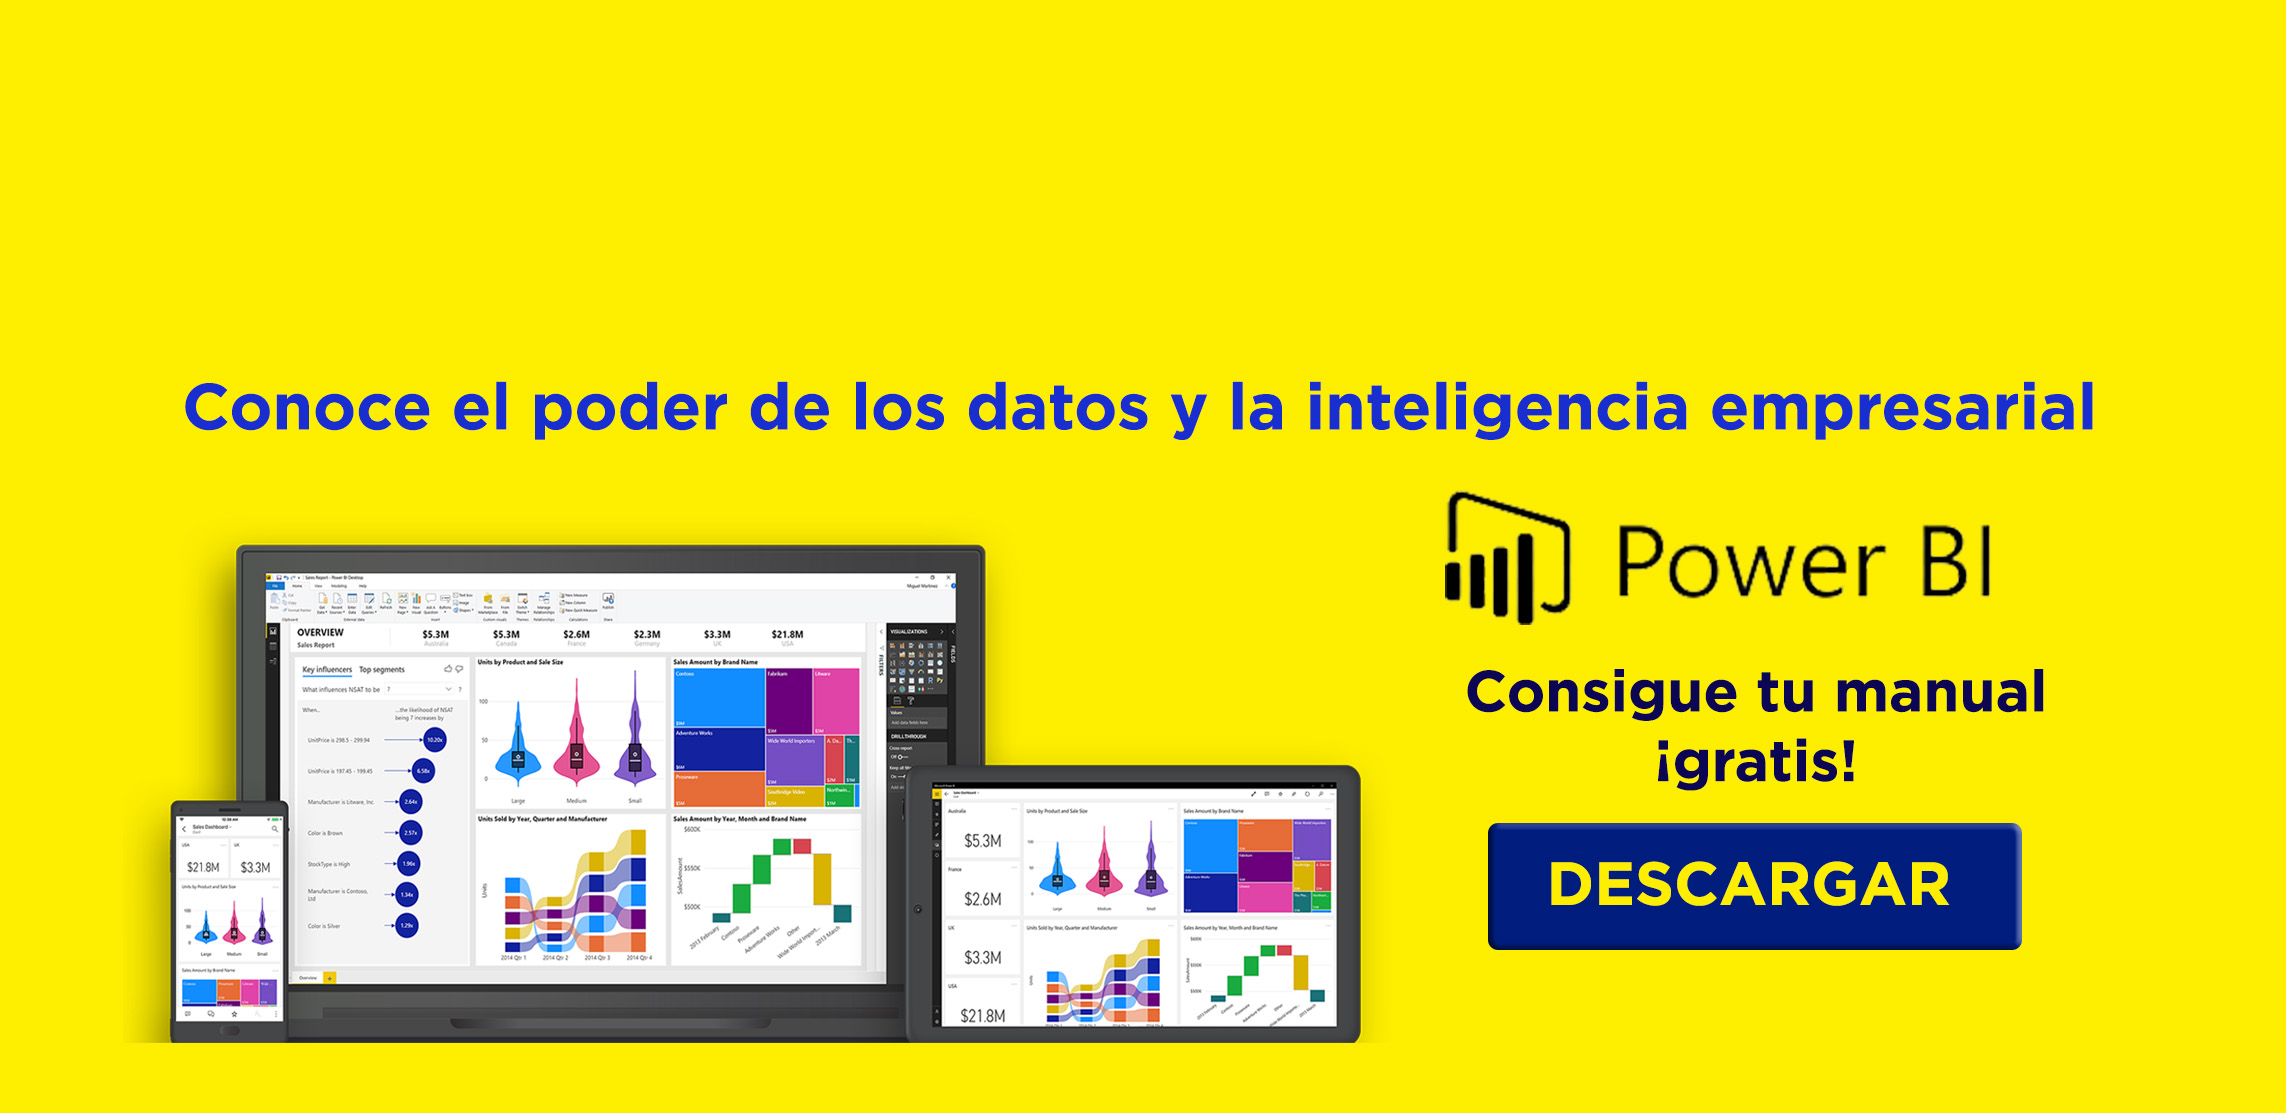 Power BI + manual